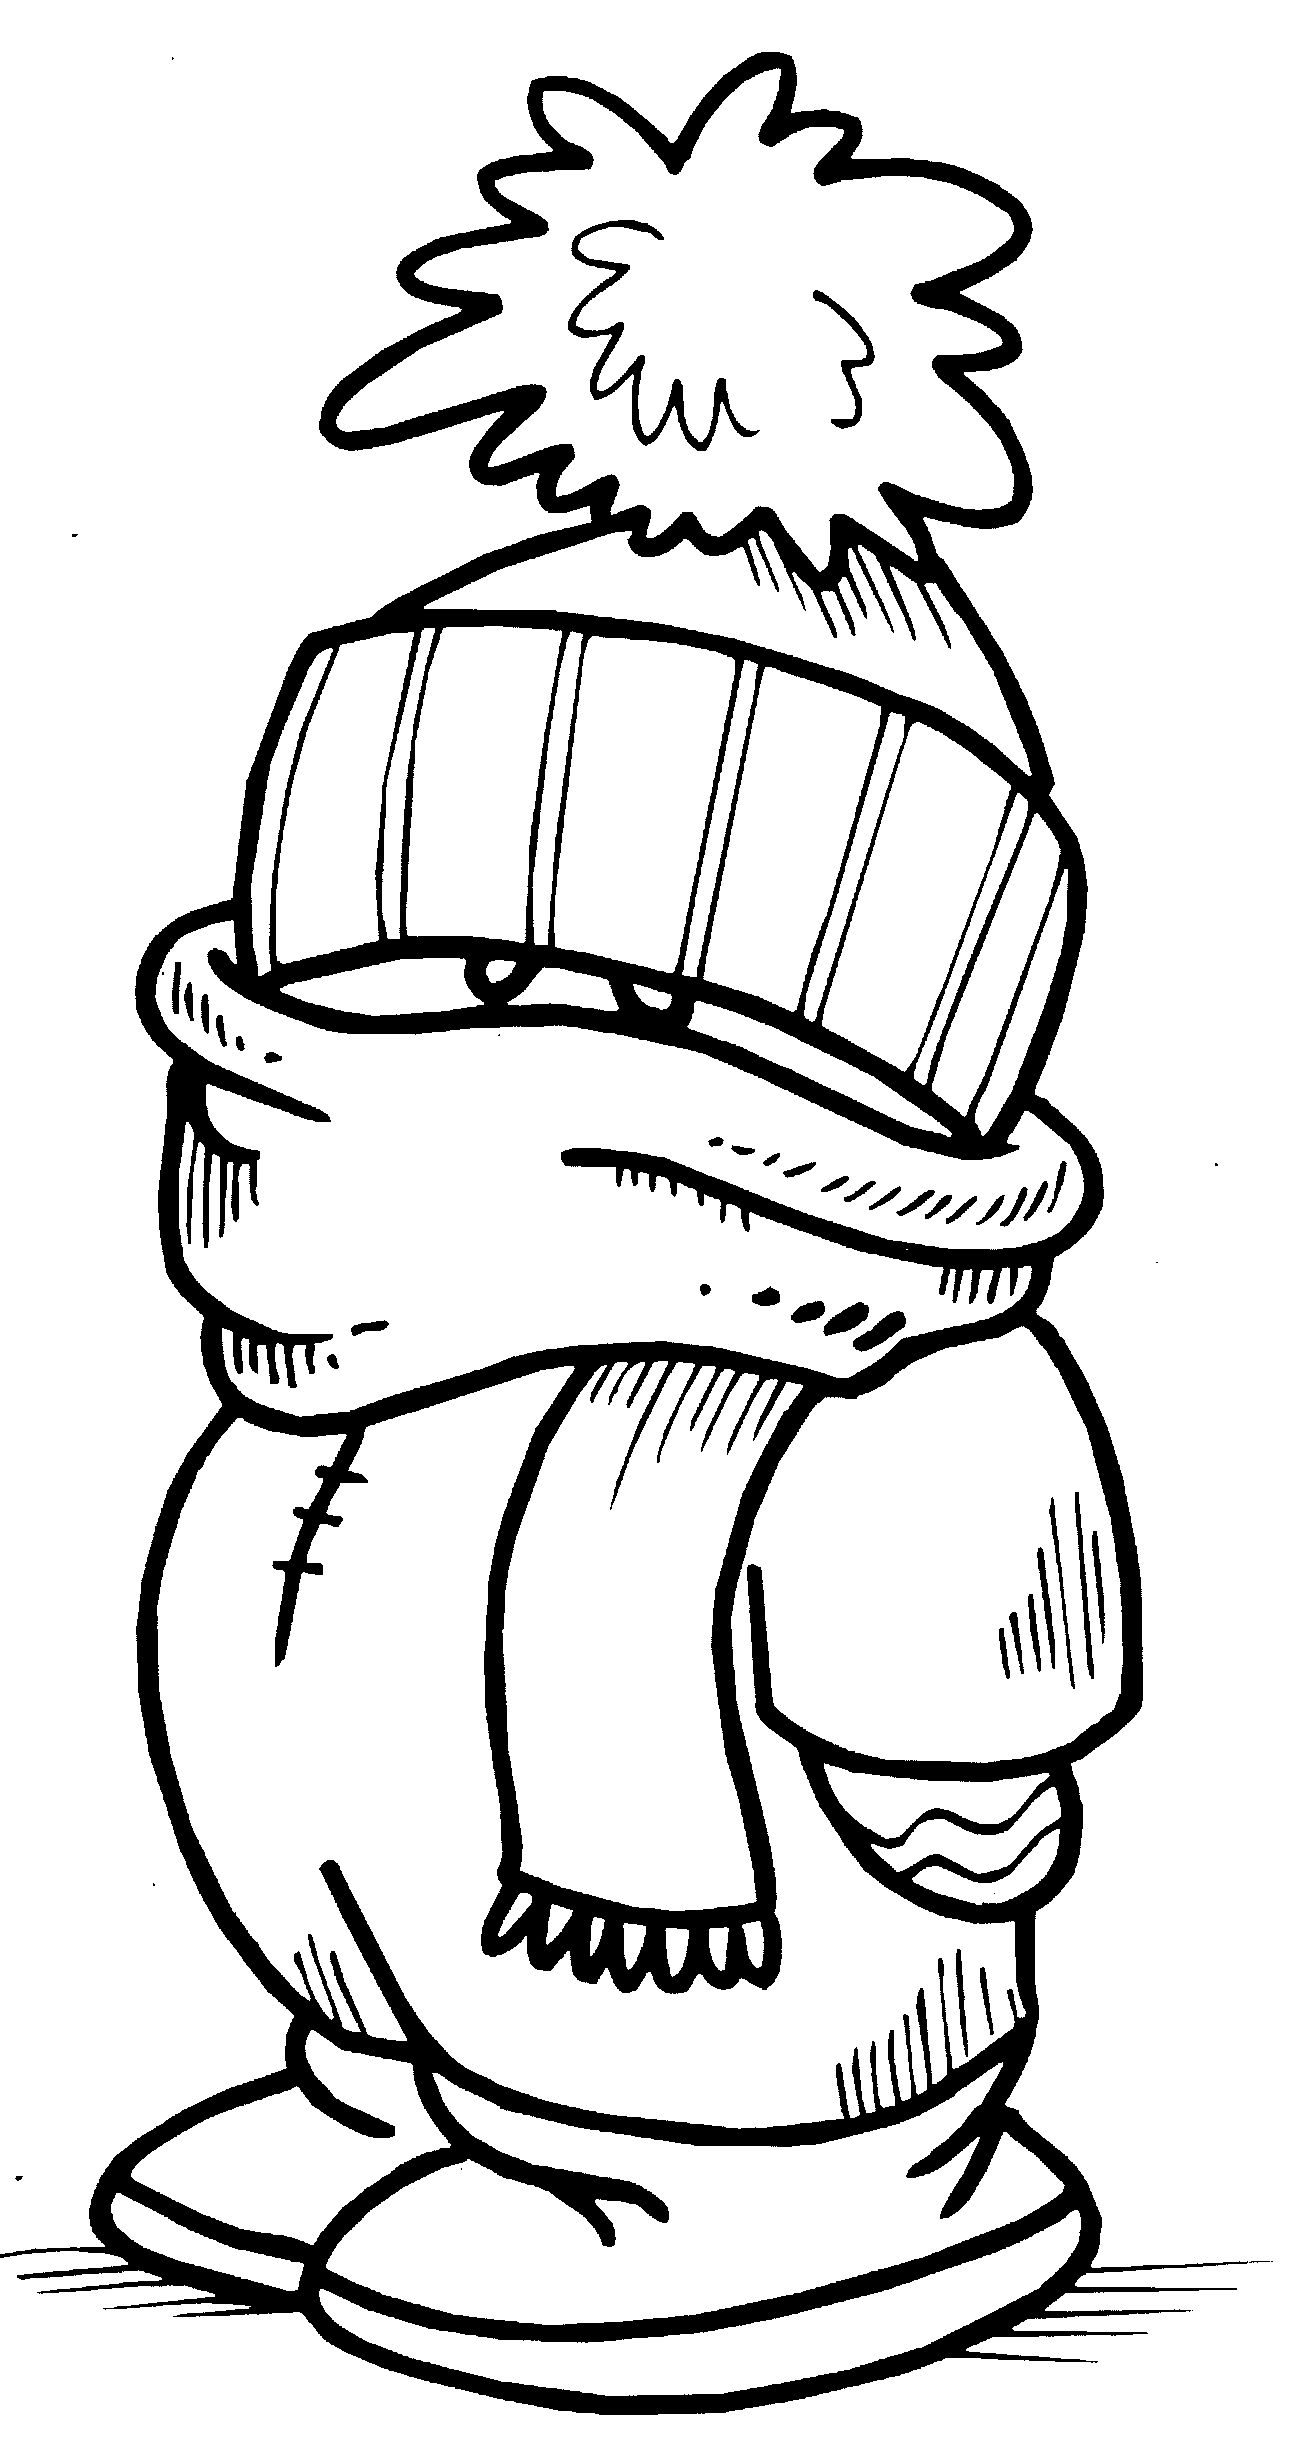 1289x2451 New Winter X Games Coloring Pages Gallery Great Collection